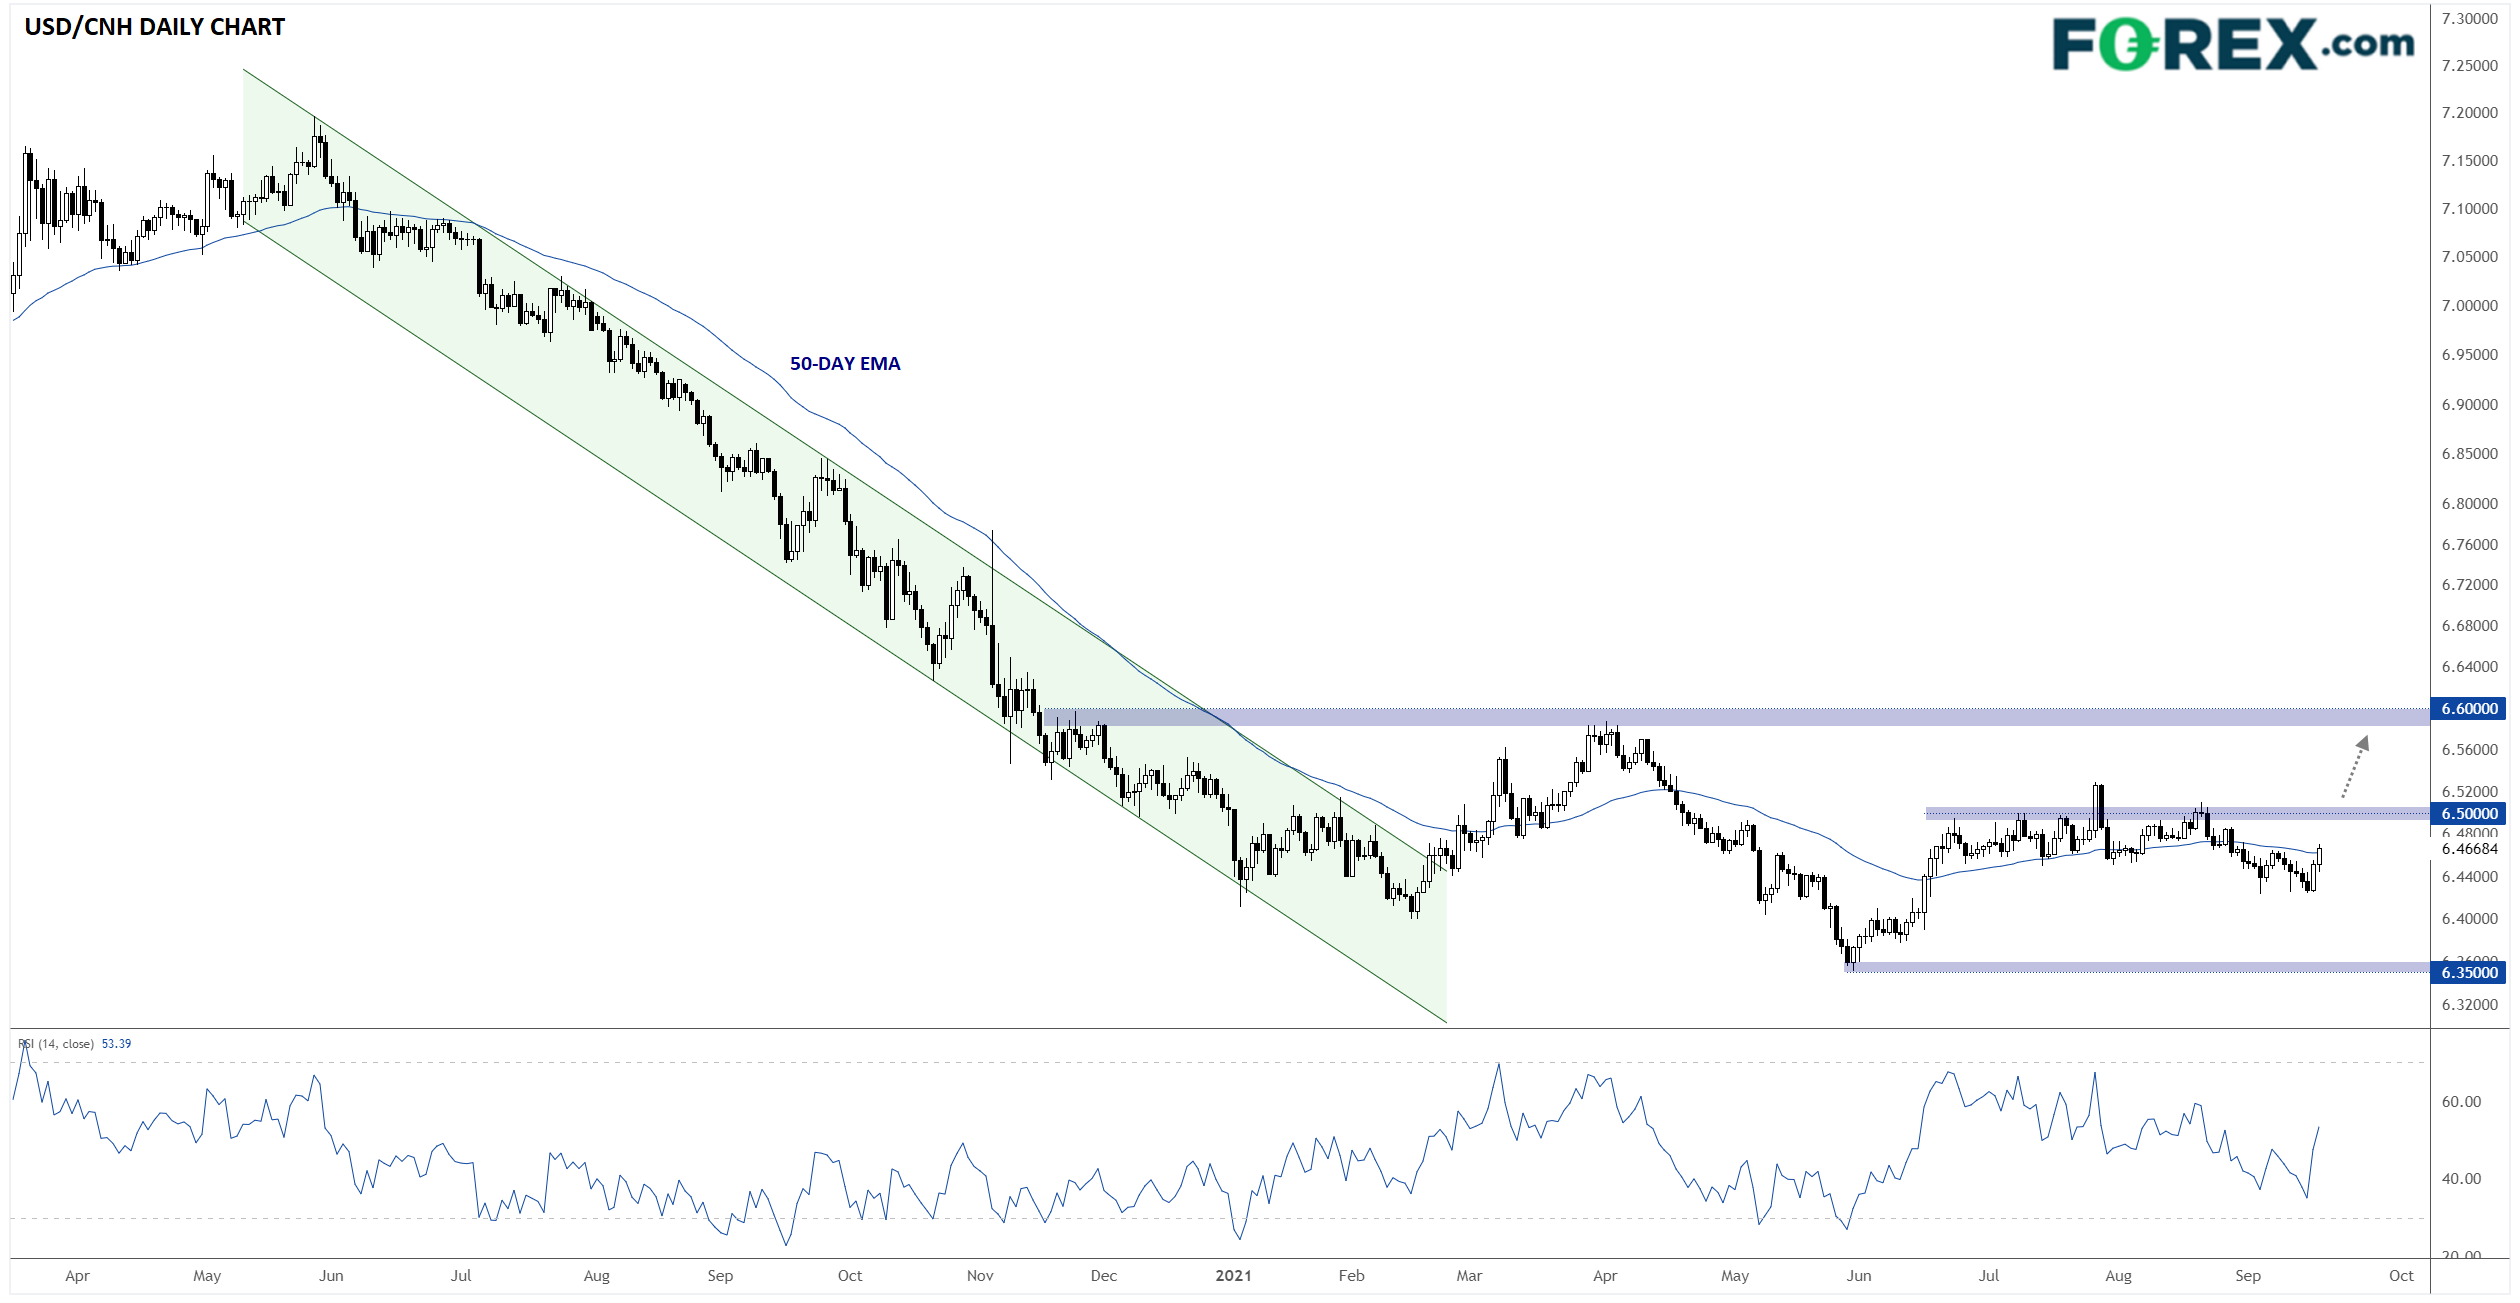 USD/CNH Daily Chart